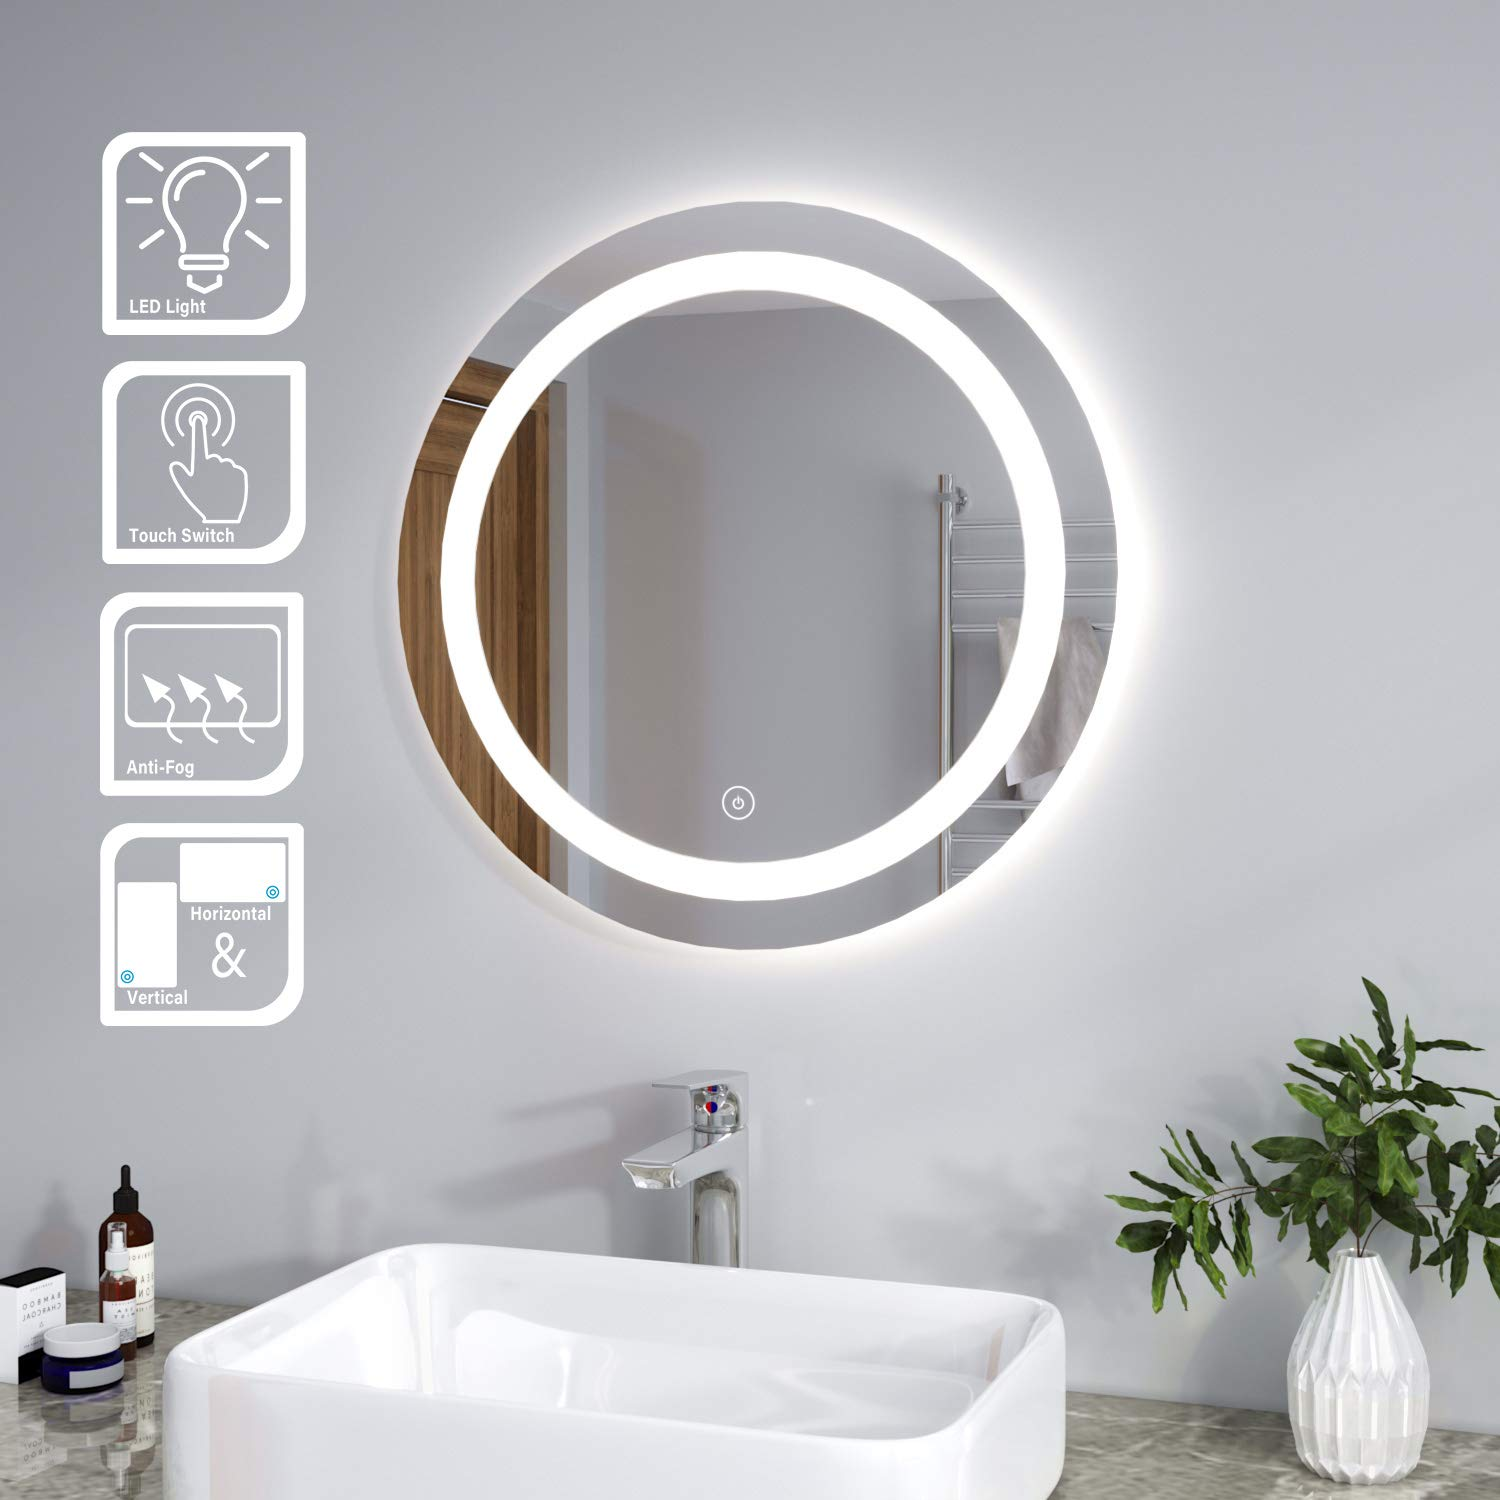 Elegant Modern Bathroom Mirror Round Waterproof Illuminated Led Backlit Wall Makeup Mirrors With White Light Sensor Buy Online In Dominica At Dominica Desertcart Com Productid 212966587